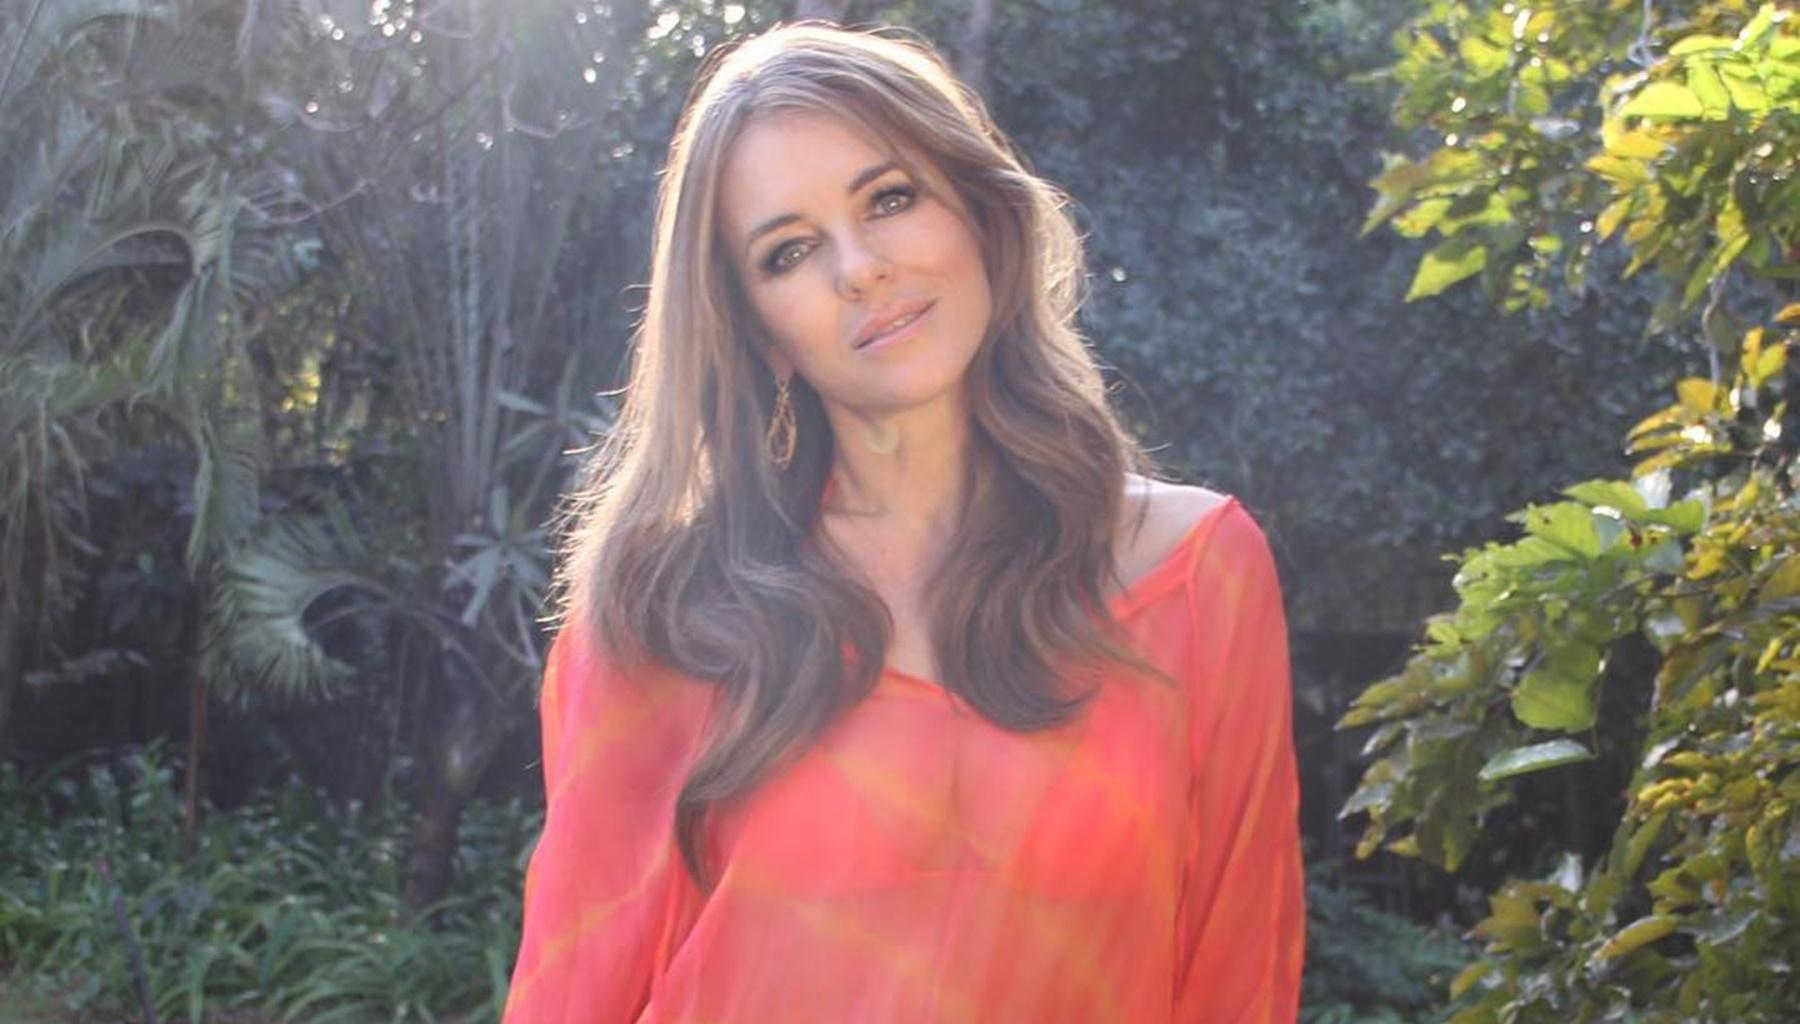 Elizabeth Hurley Stuns At 53 In Summer-Ready Bathing Suit Pictures -- Here Is How The Modeling Legend Stays In Shape